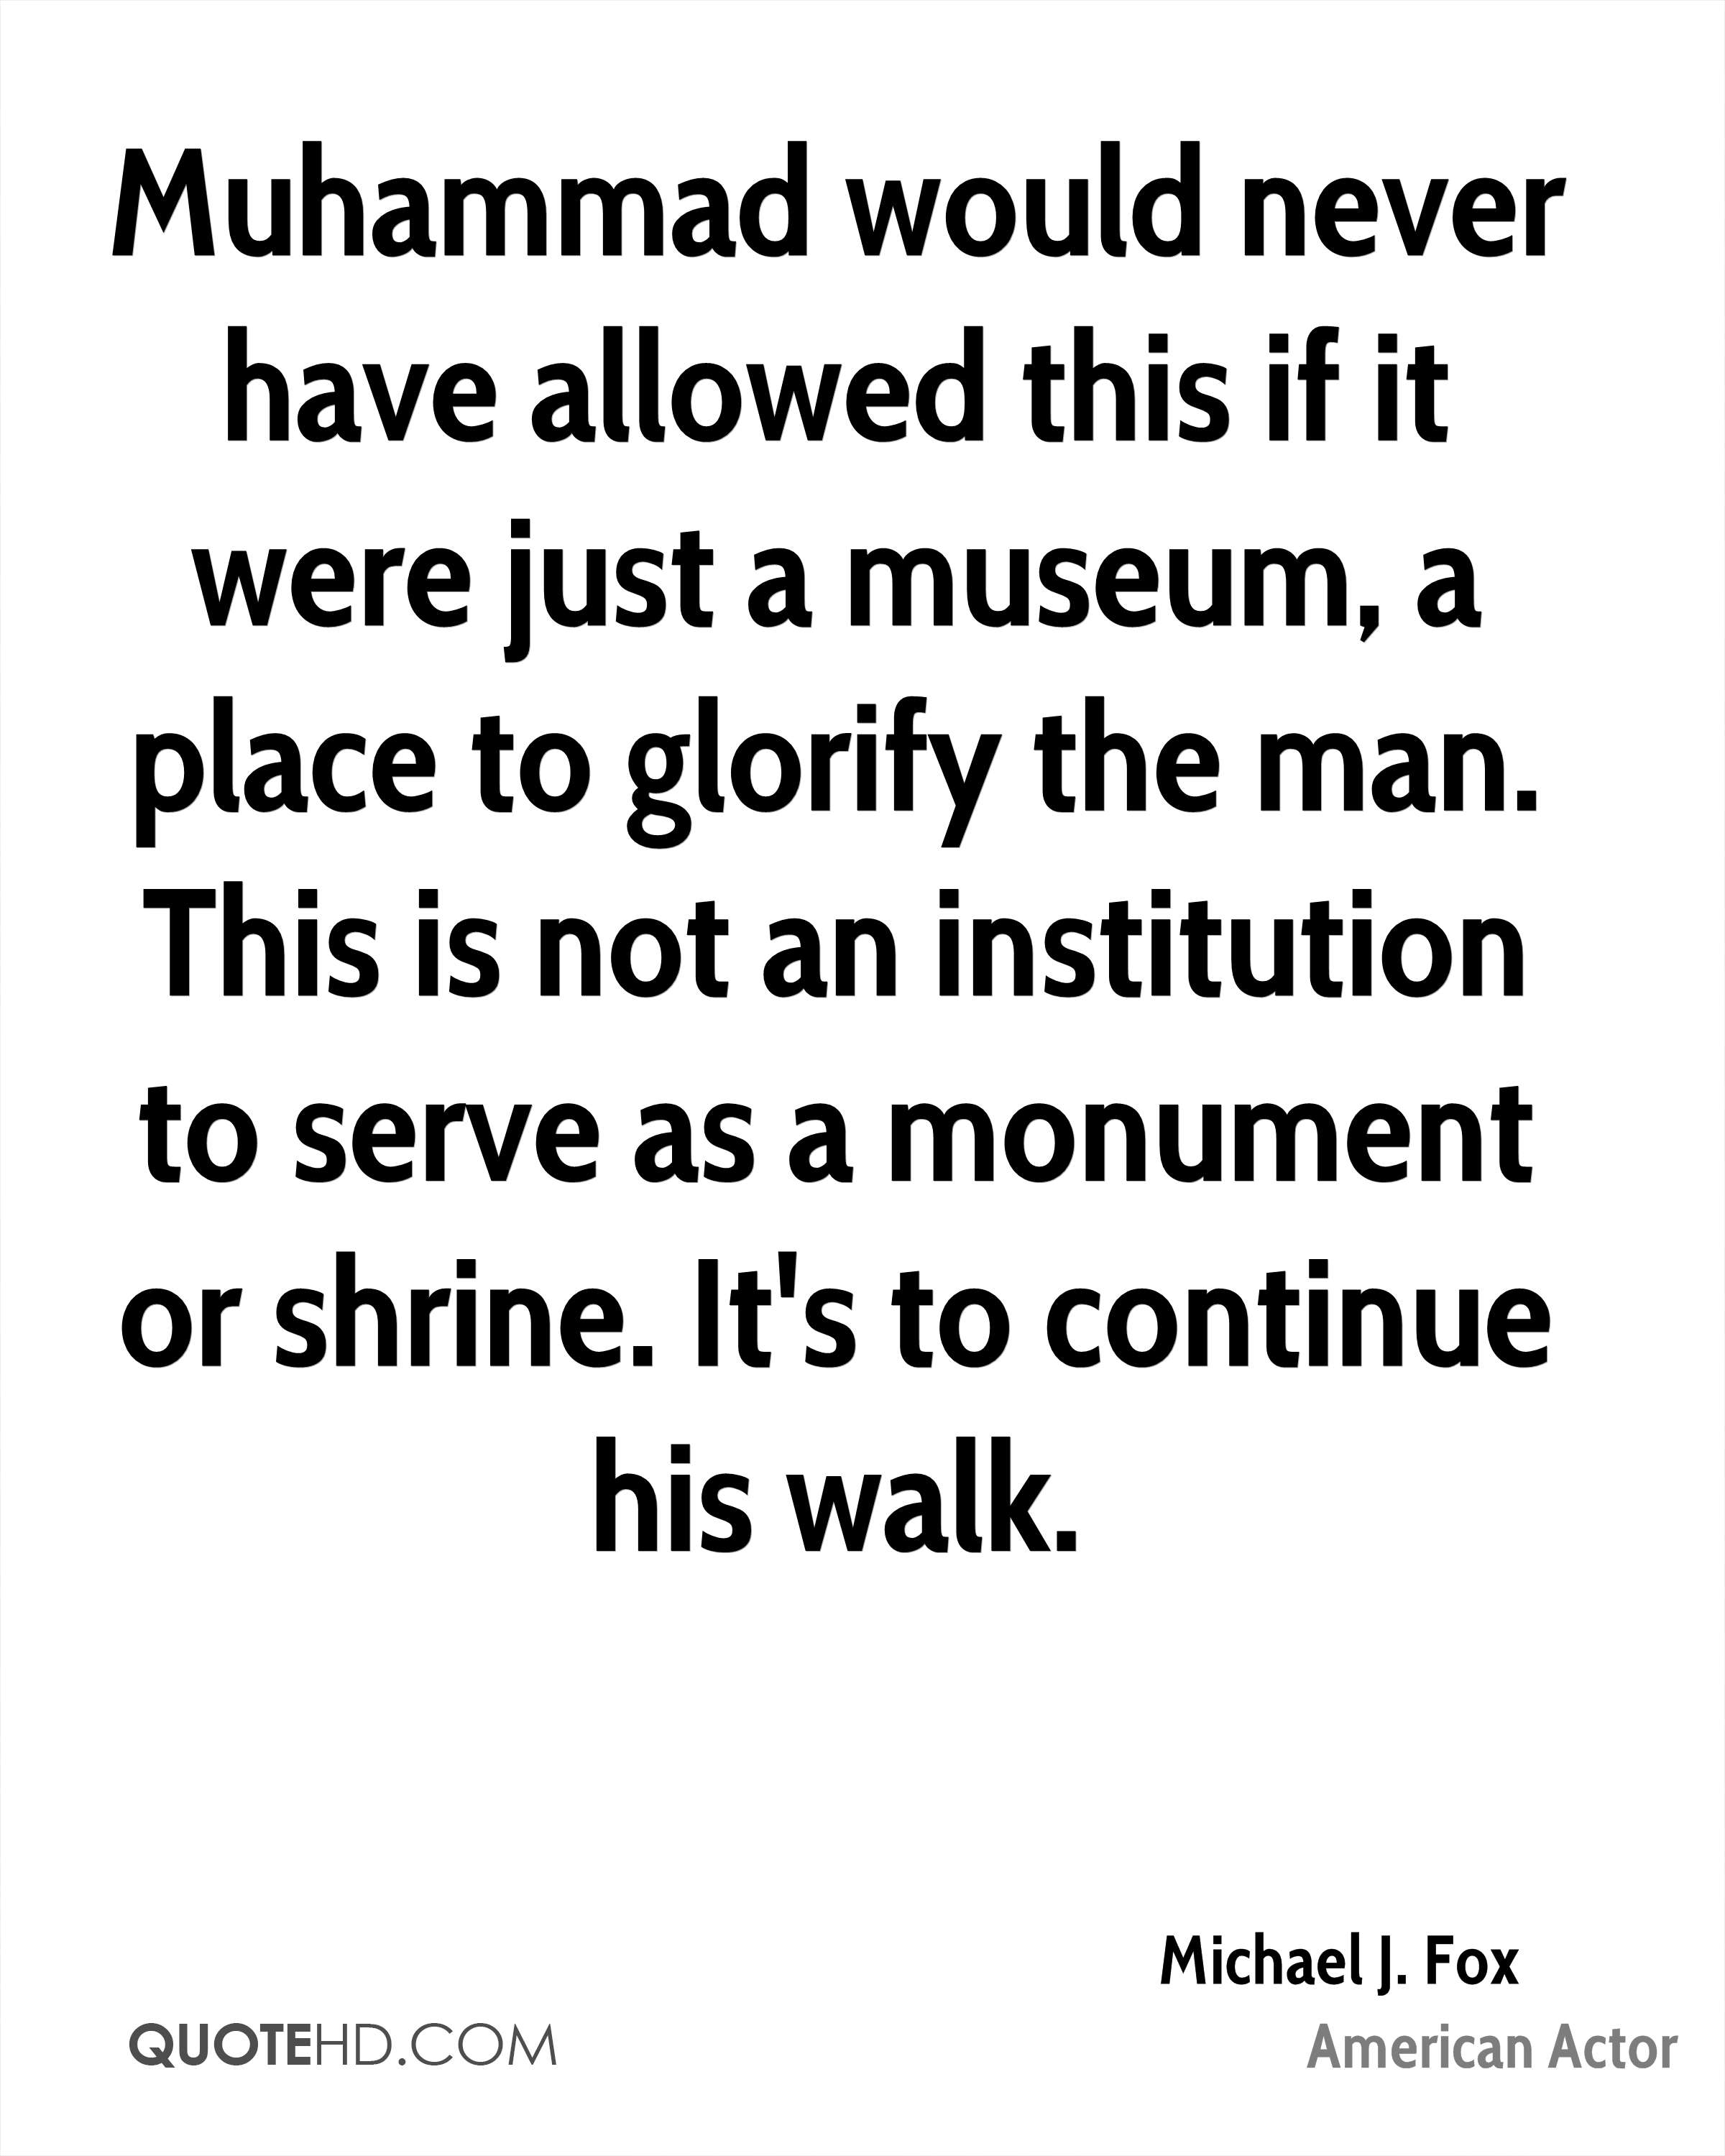 Muhammad would never have allowed this if it were just a museum, a place to glorify the man. This is not an institution to serve as a monument or shrine. It's to continue his walk.